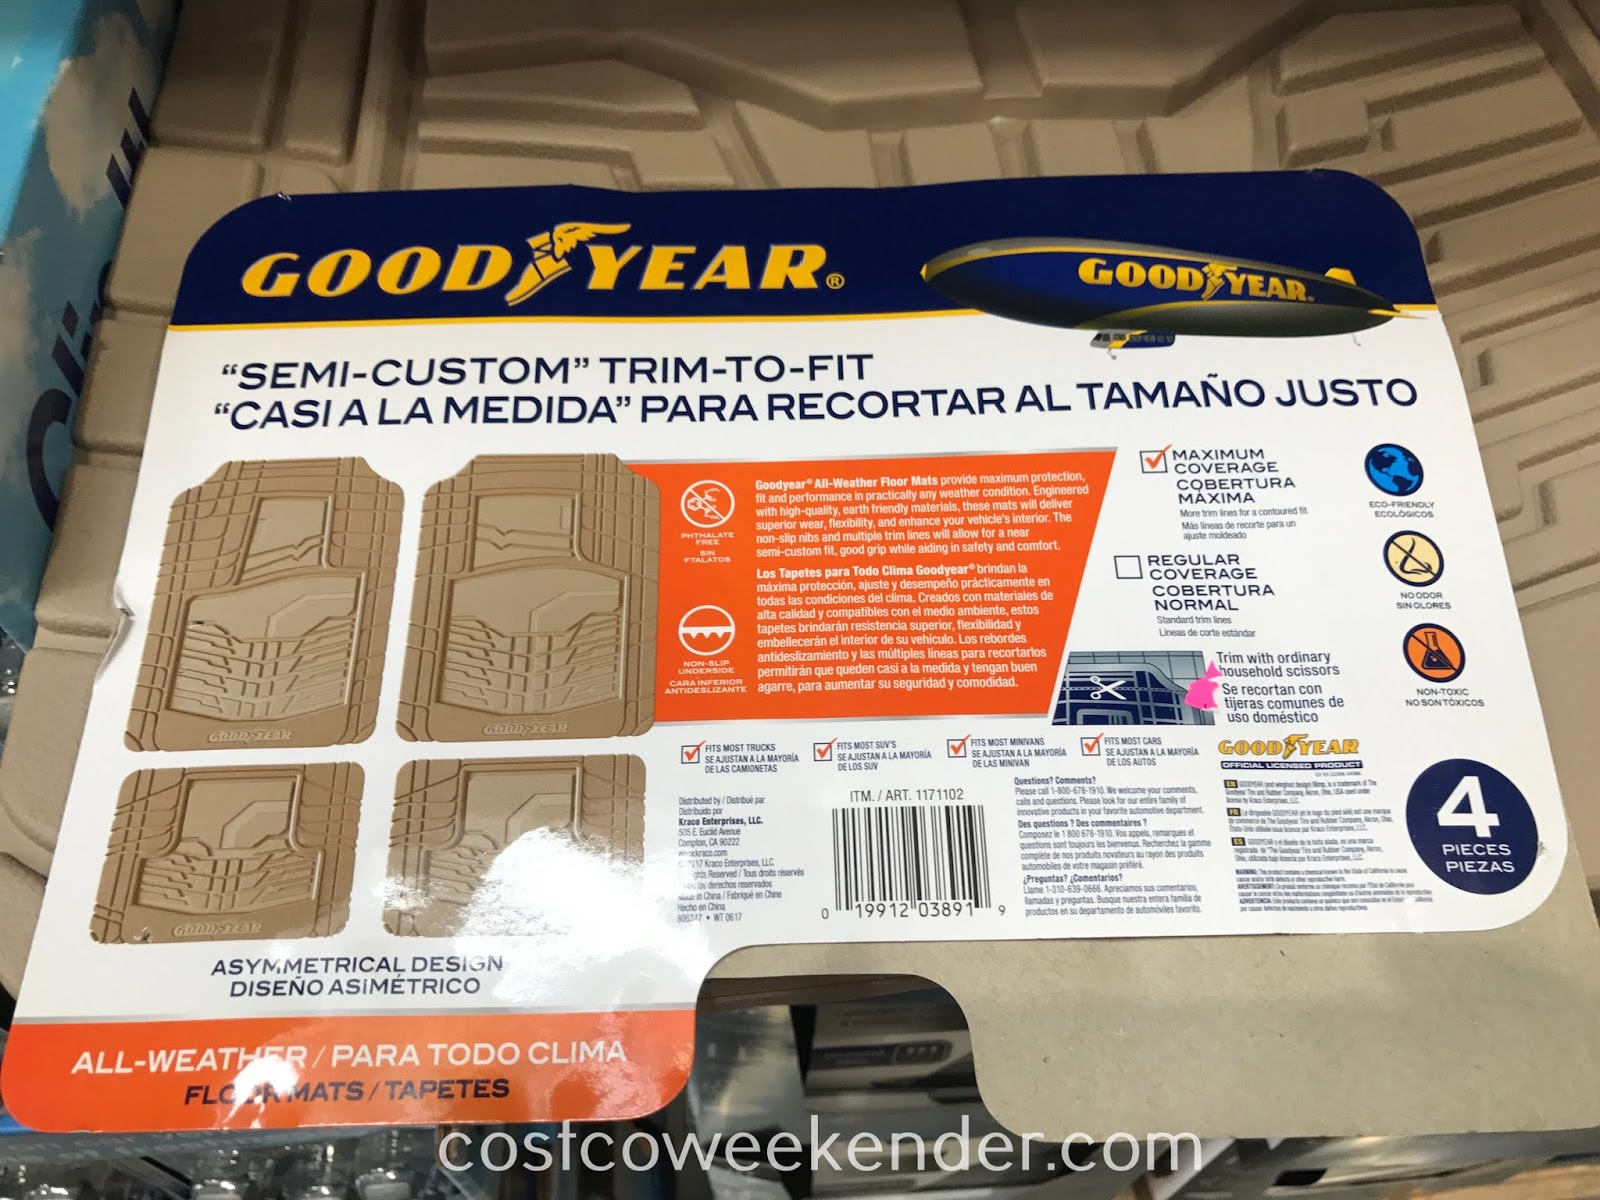 Goodyear All-weather Floor Mats: great for any car